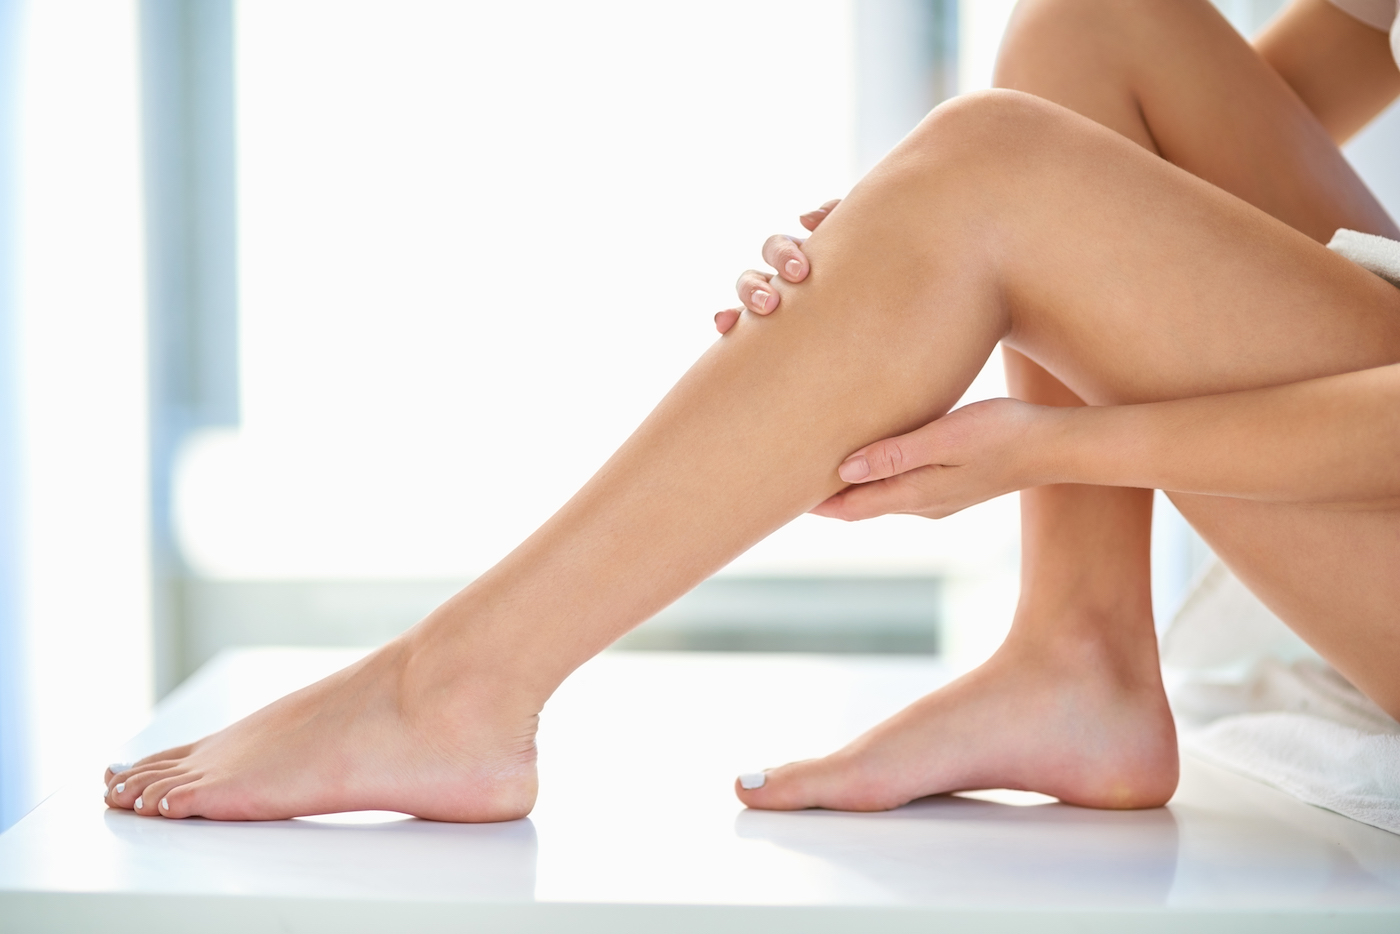 Meet the Cleansing Body Scraper That'll Make You Feel 'As Smooth as a Seal'